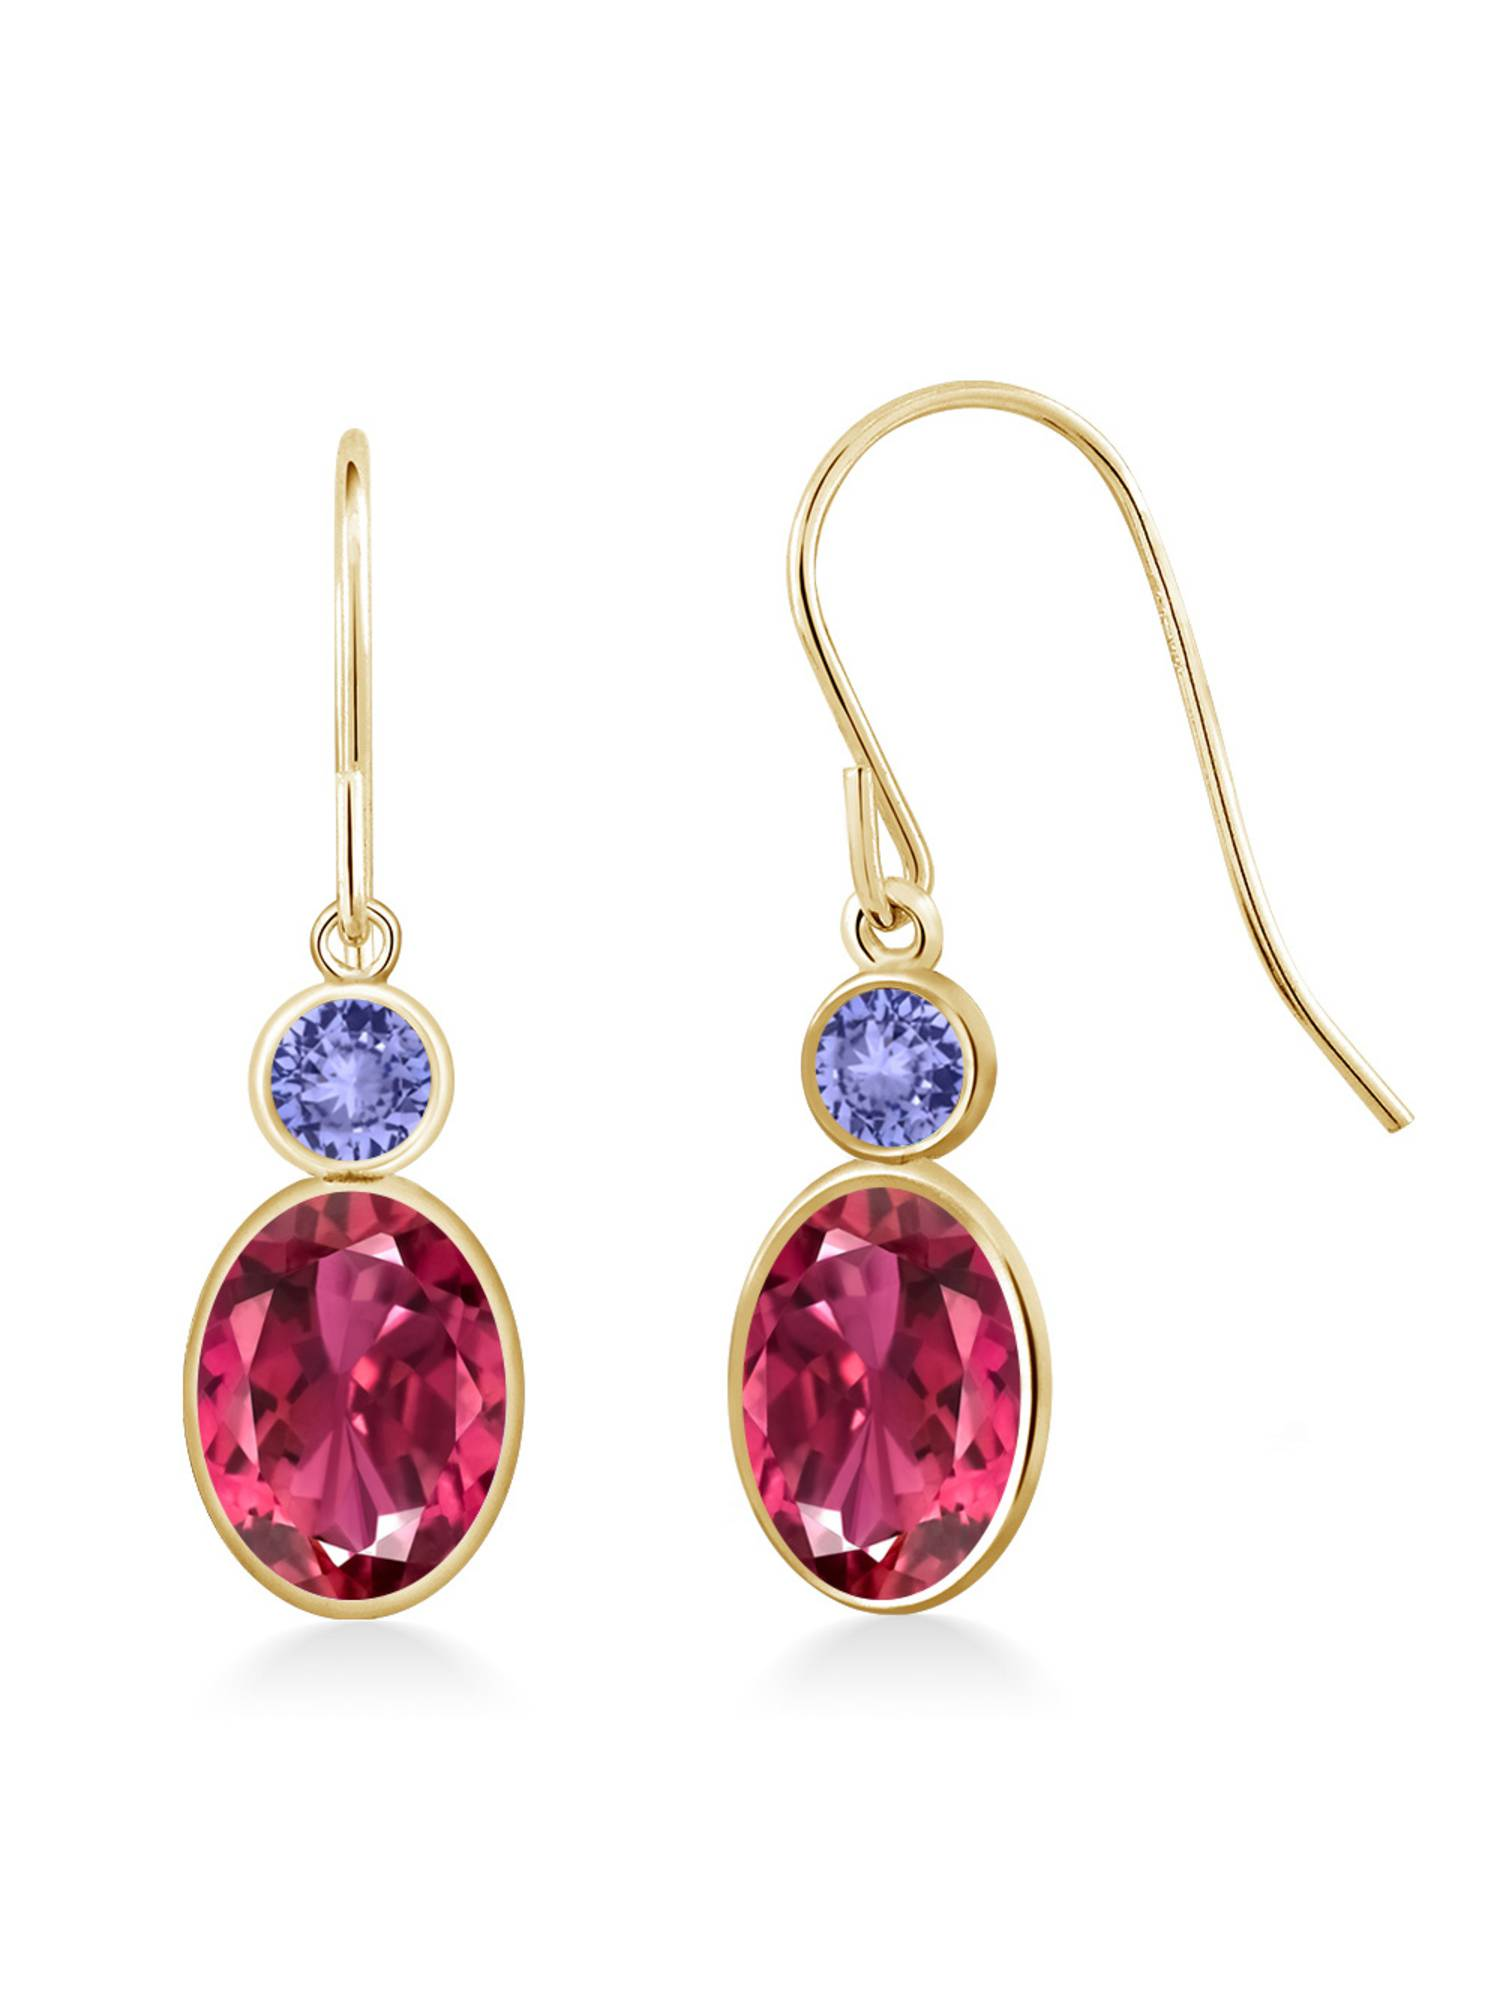 1.94 Ct Oval Pink Tourmaline Blue Tanzanite 14K Yellow Gold Earrings by